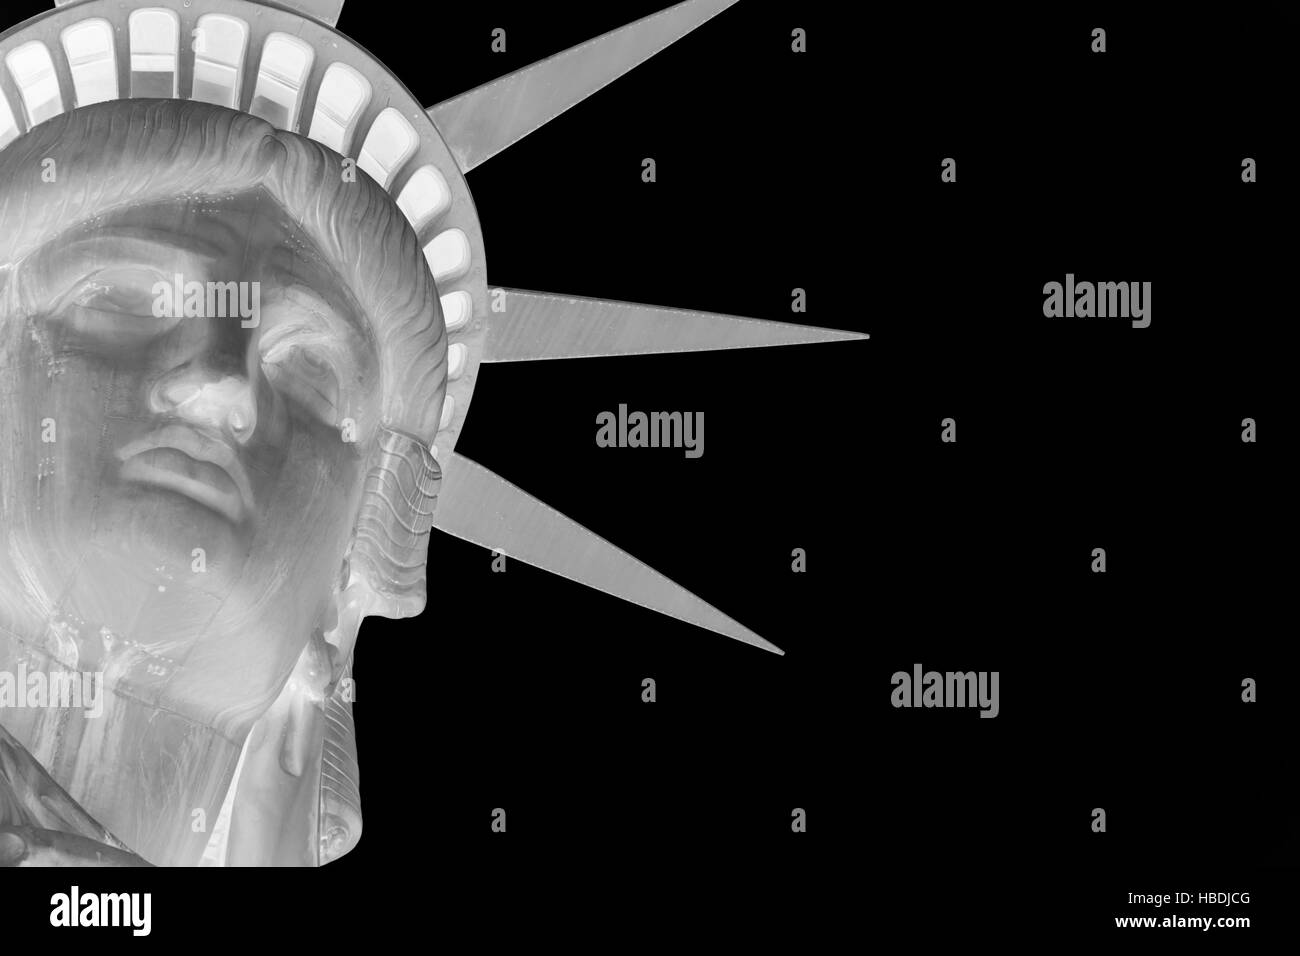 Statue of liberty inverted - Stock Image